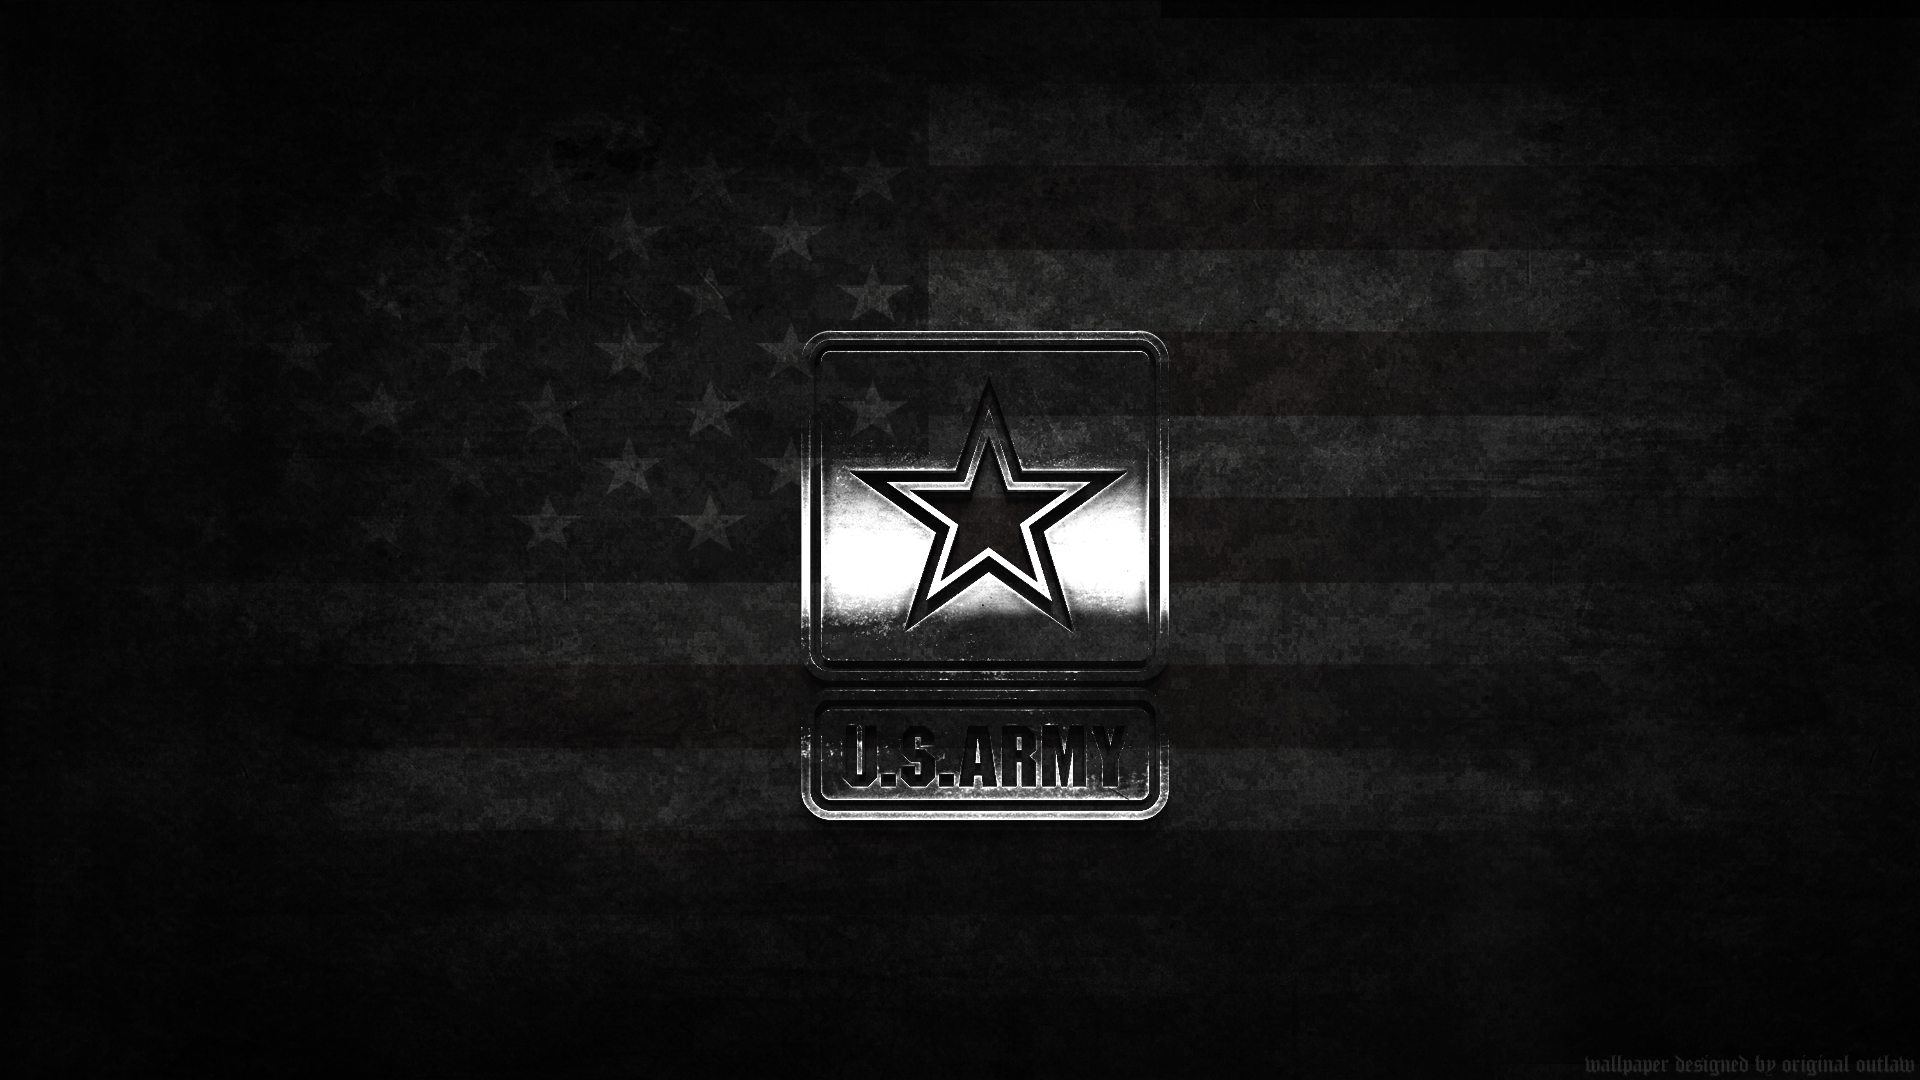 49 Military Wallpapers For Desktop On Wallpapersafari